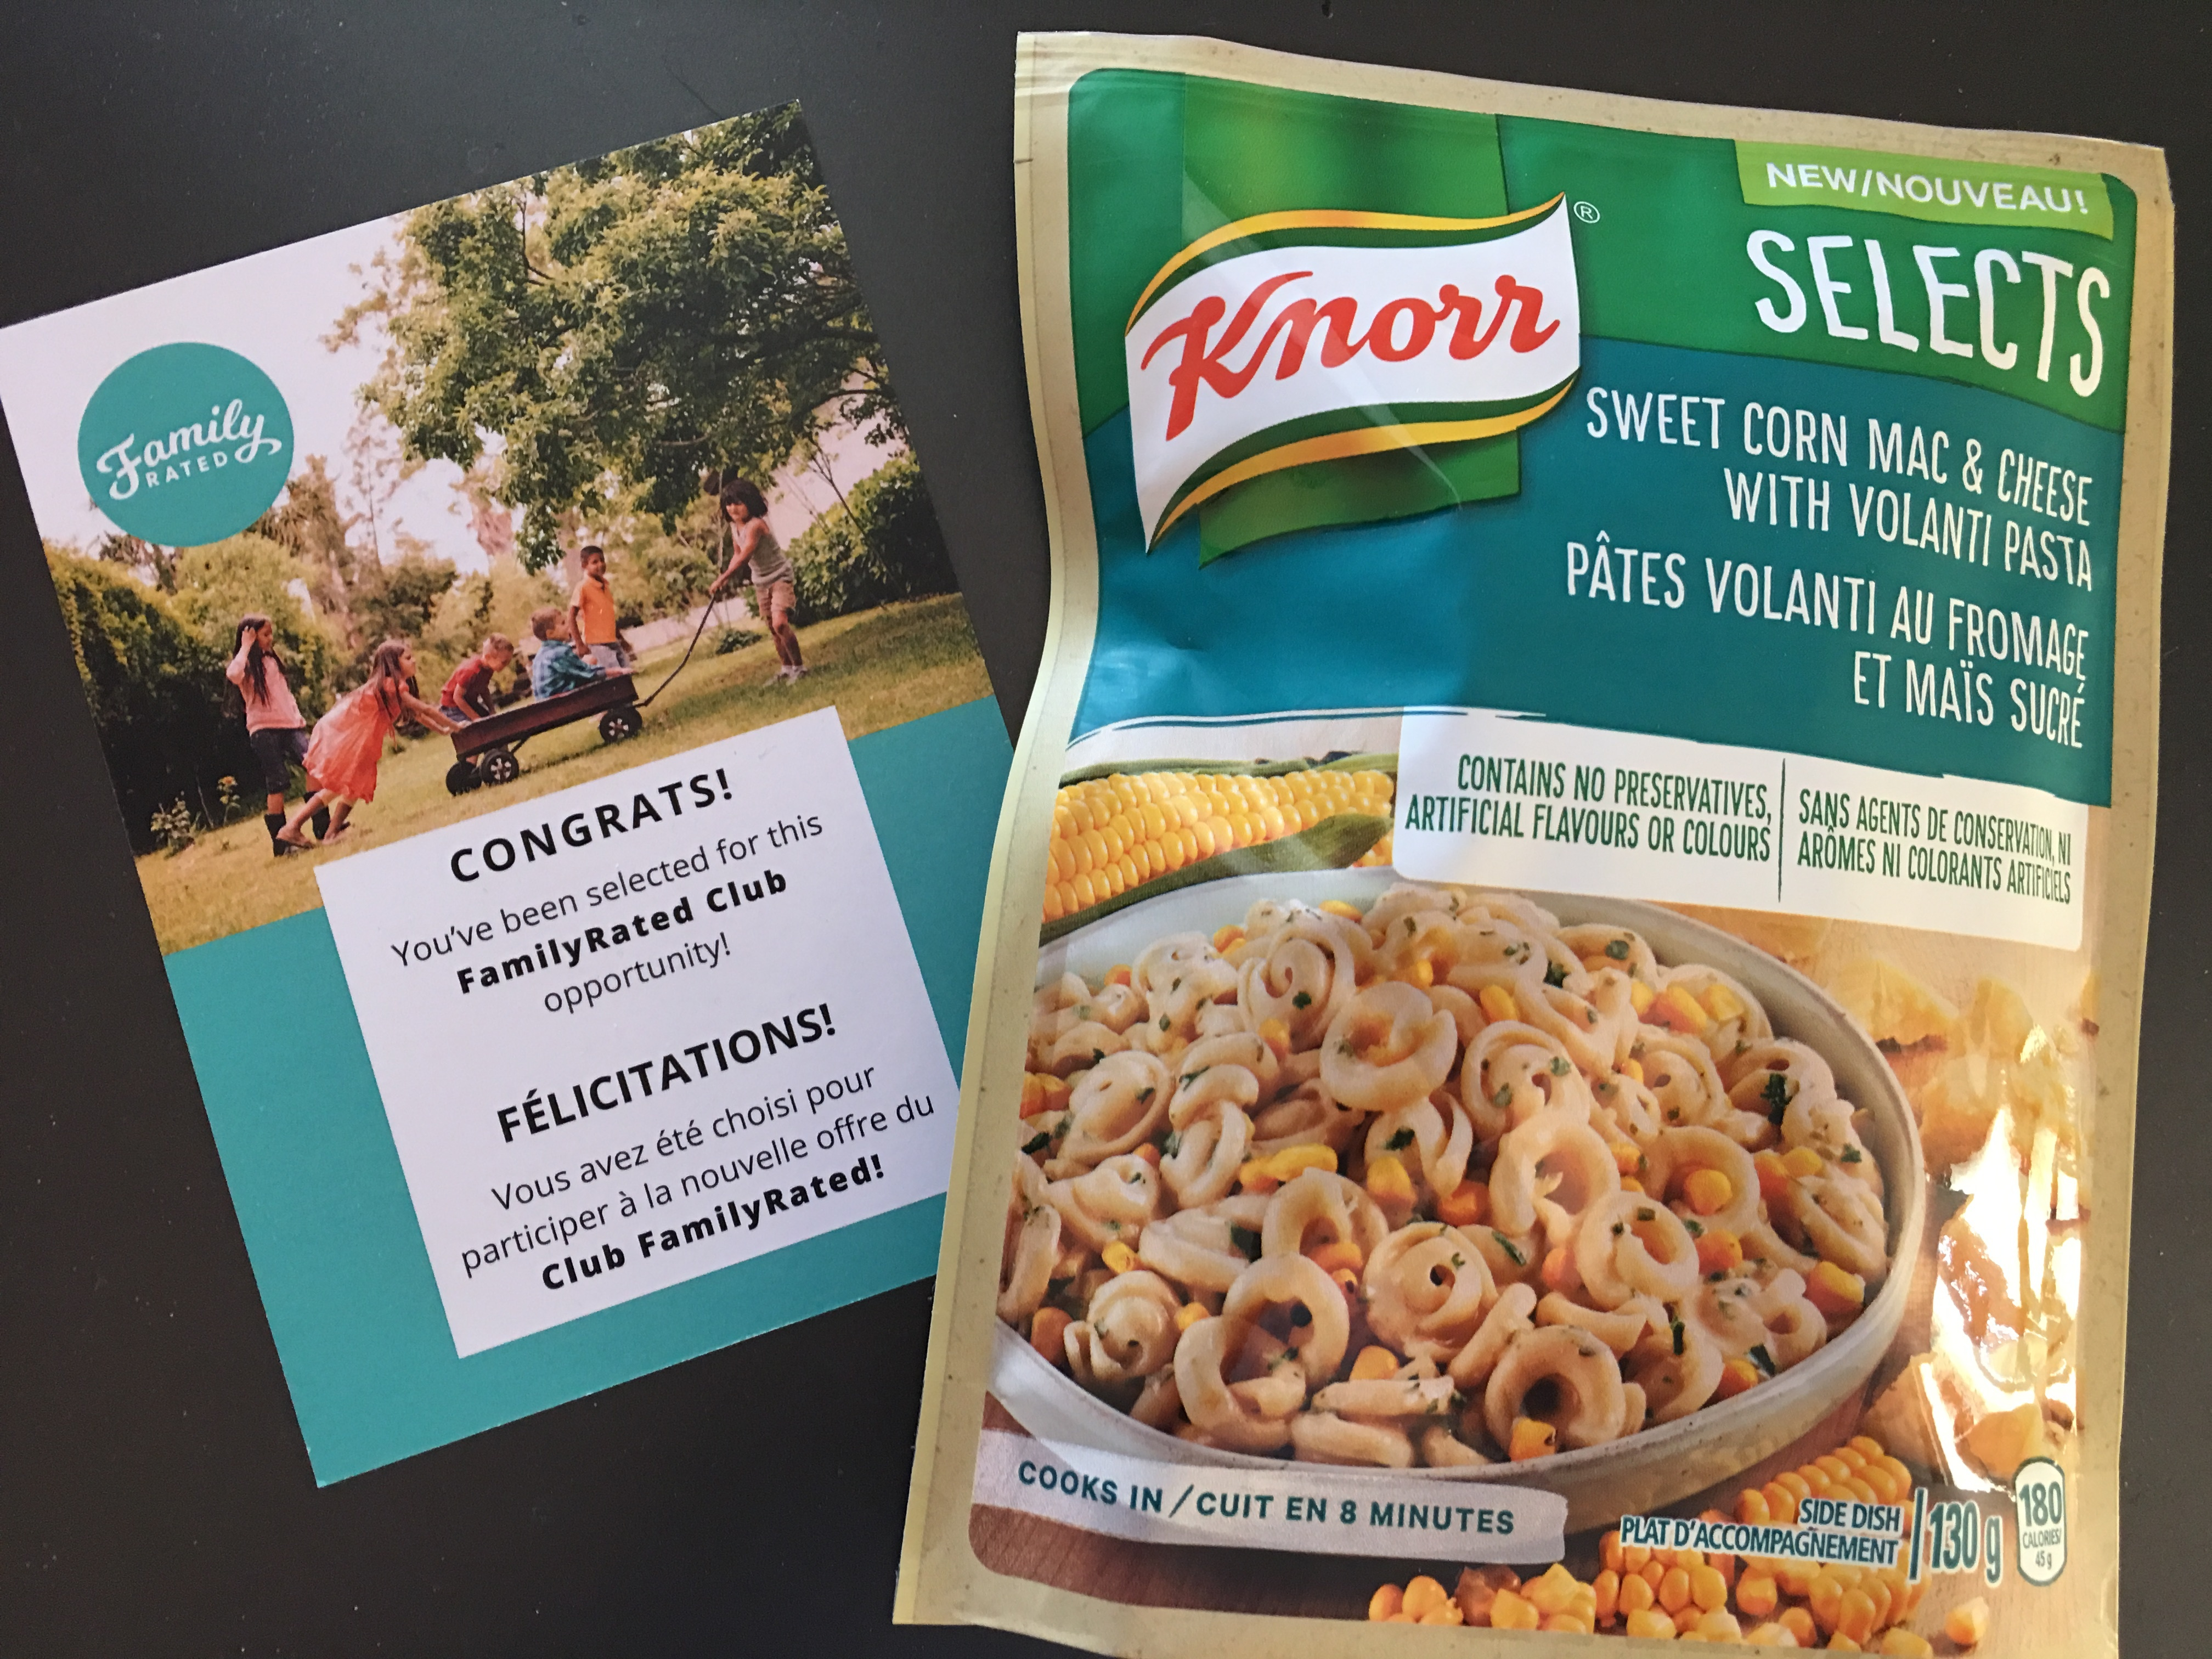 Knorr Selects Sweet Corn Mac Amp Cheese With Volanti Pasta